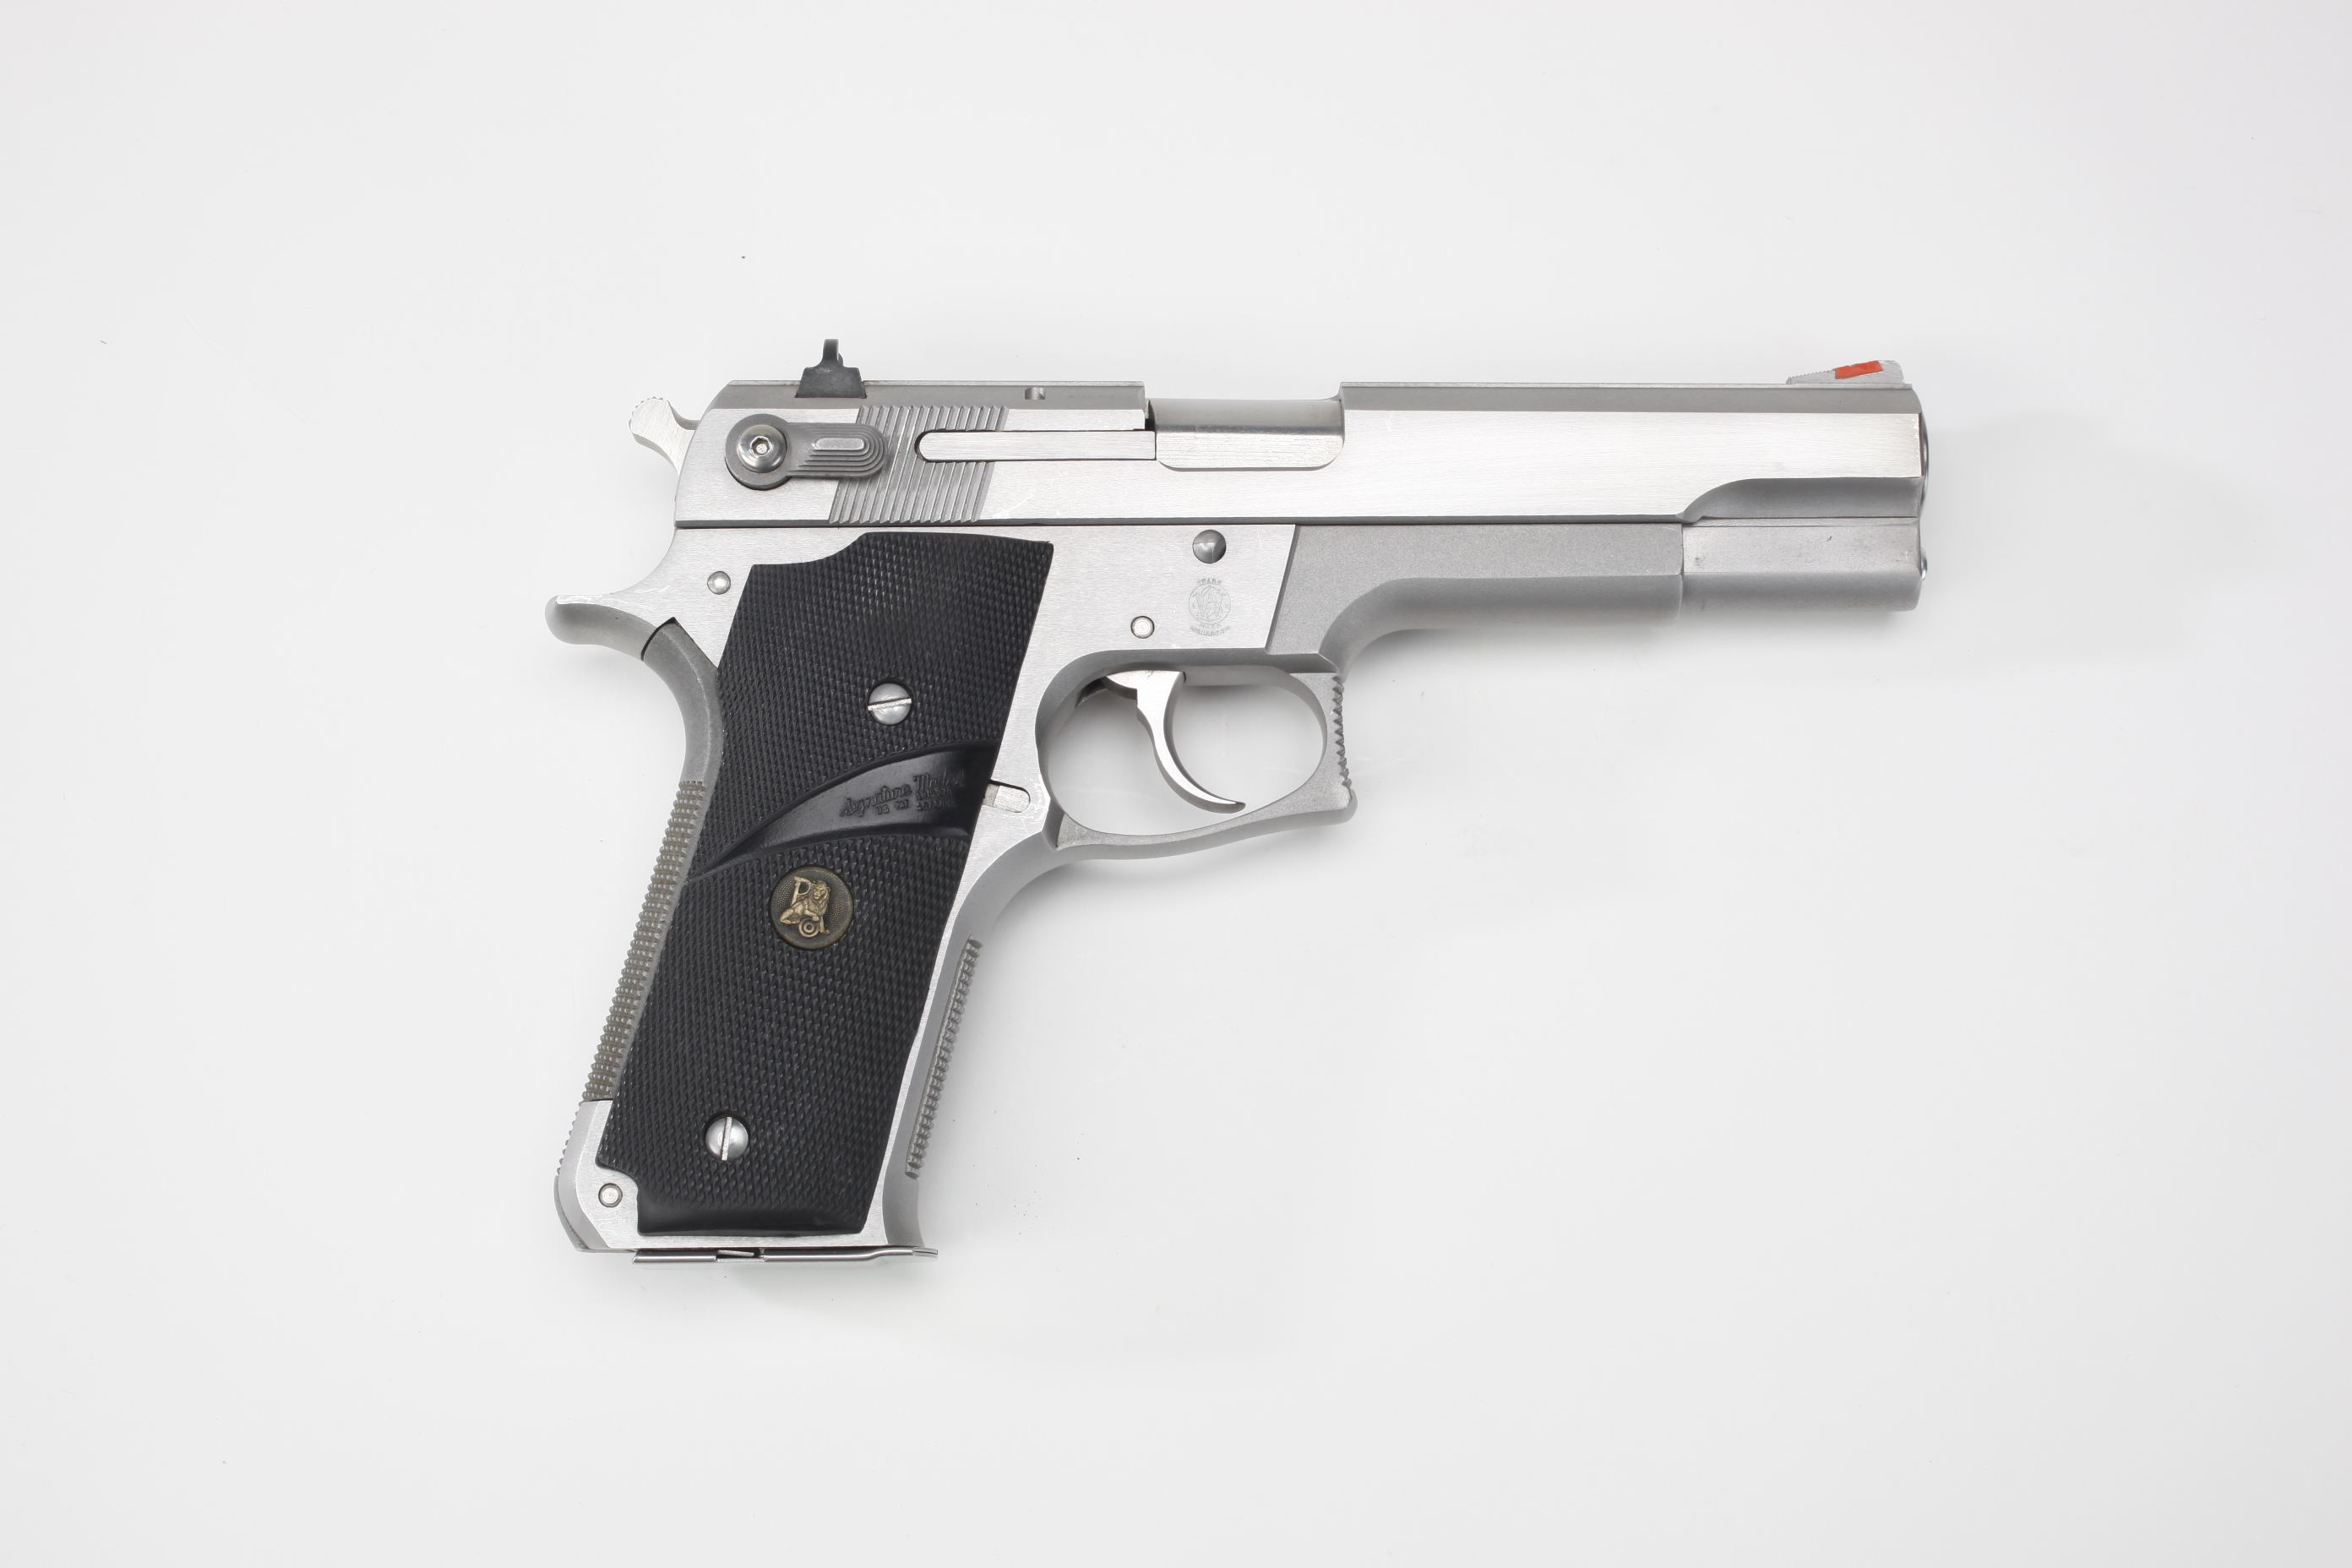 Smith & Wesson Model 645 Double Action Semi Automatic Pistol